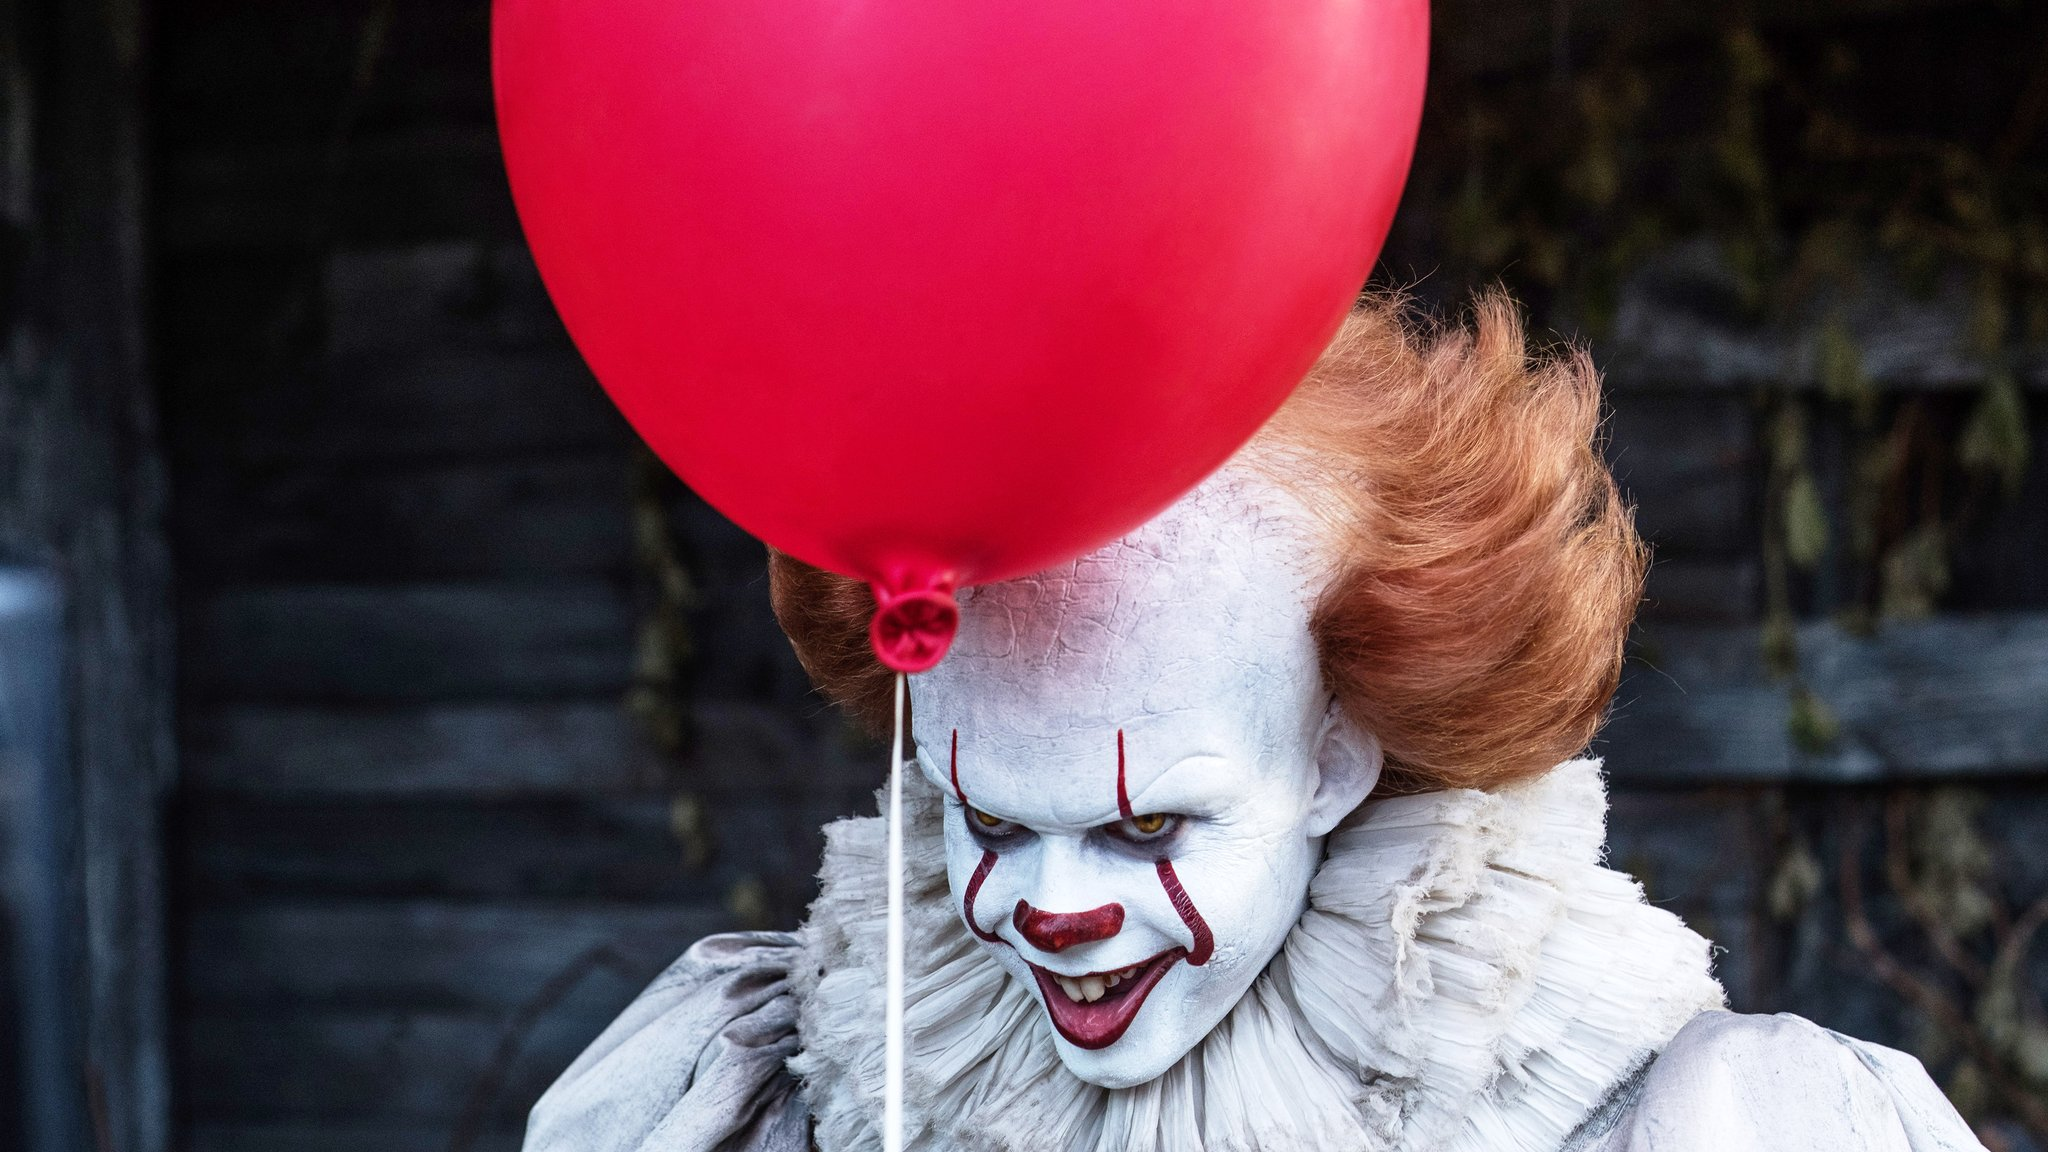 A Banned 'It' Scene Has Been Released